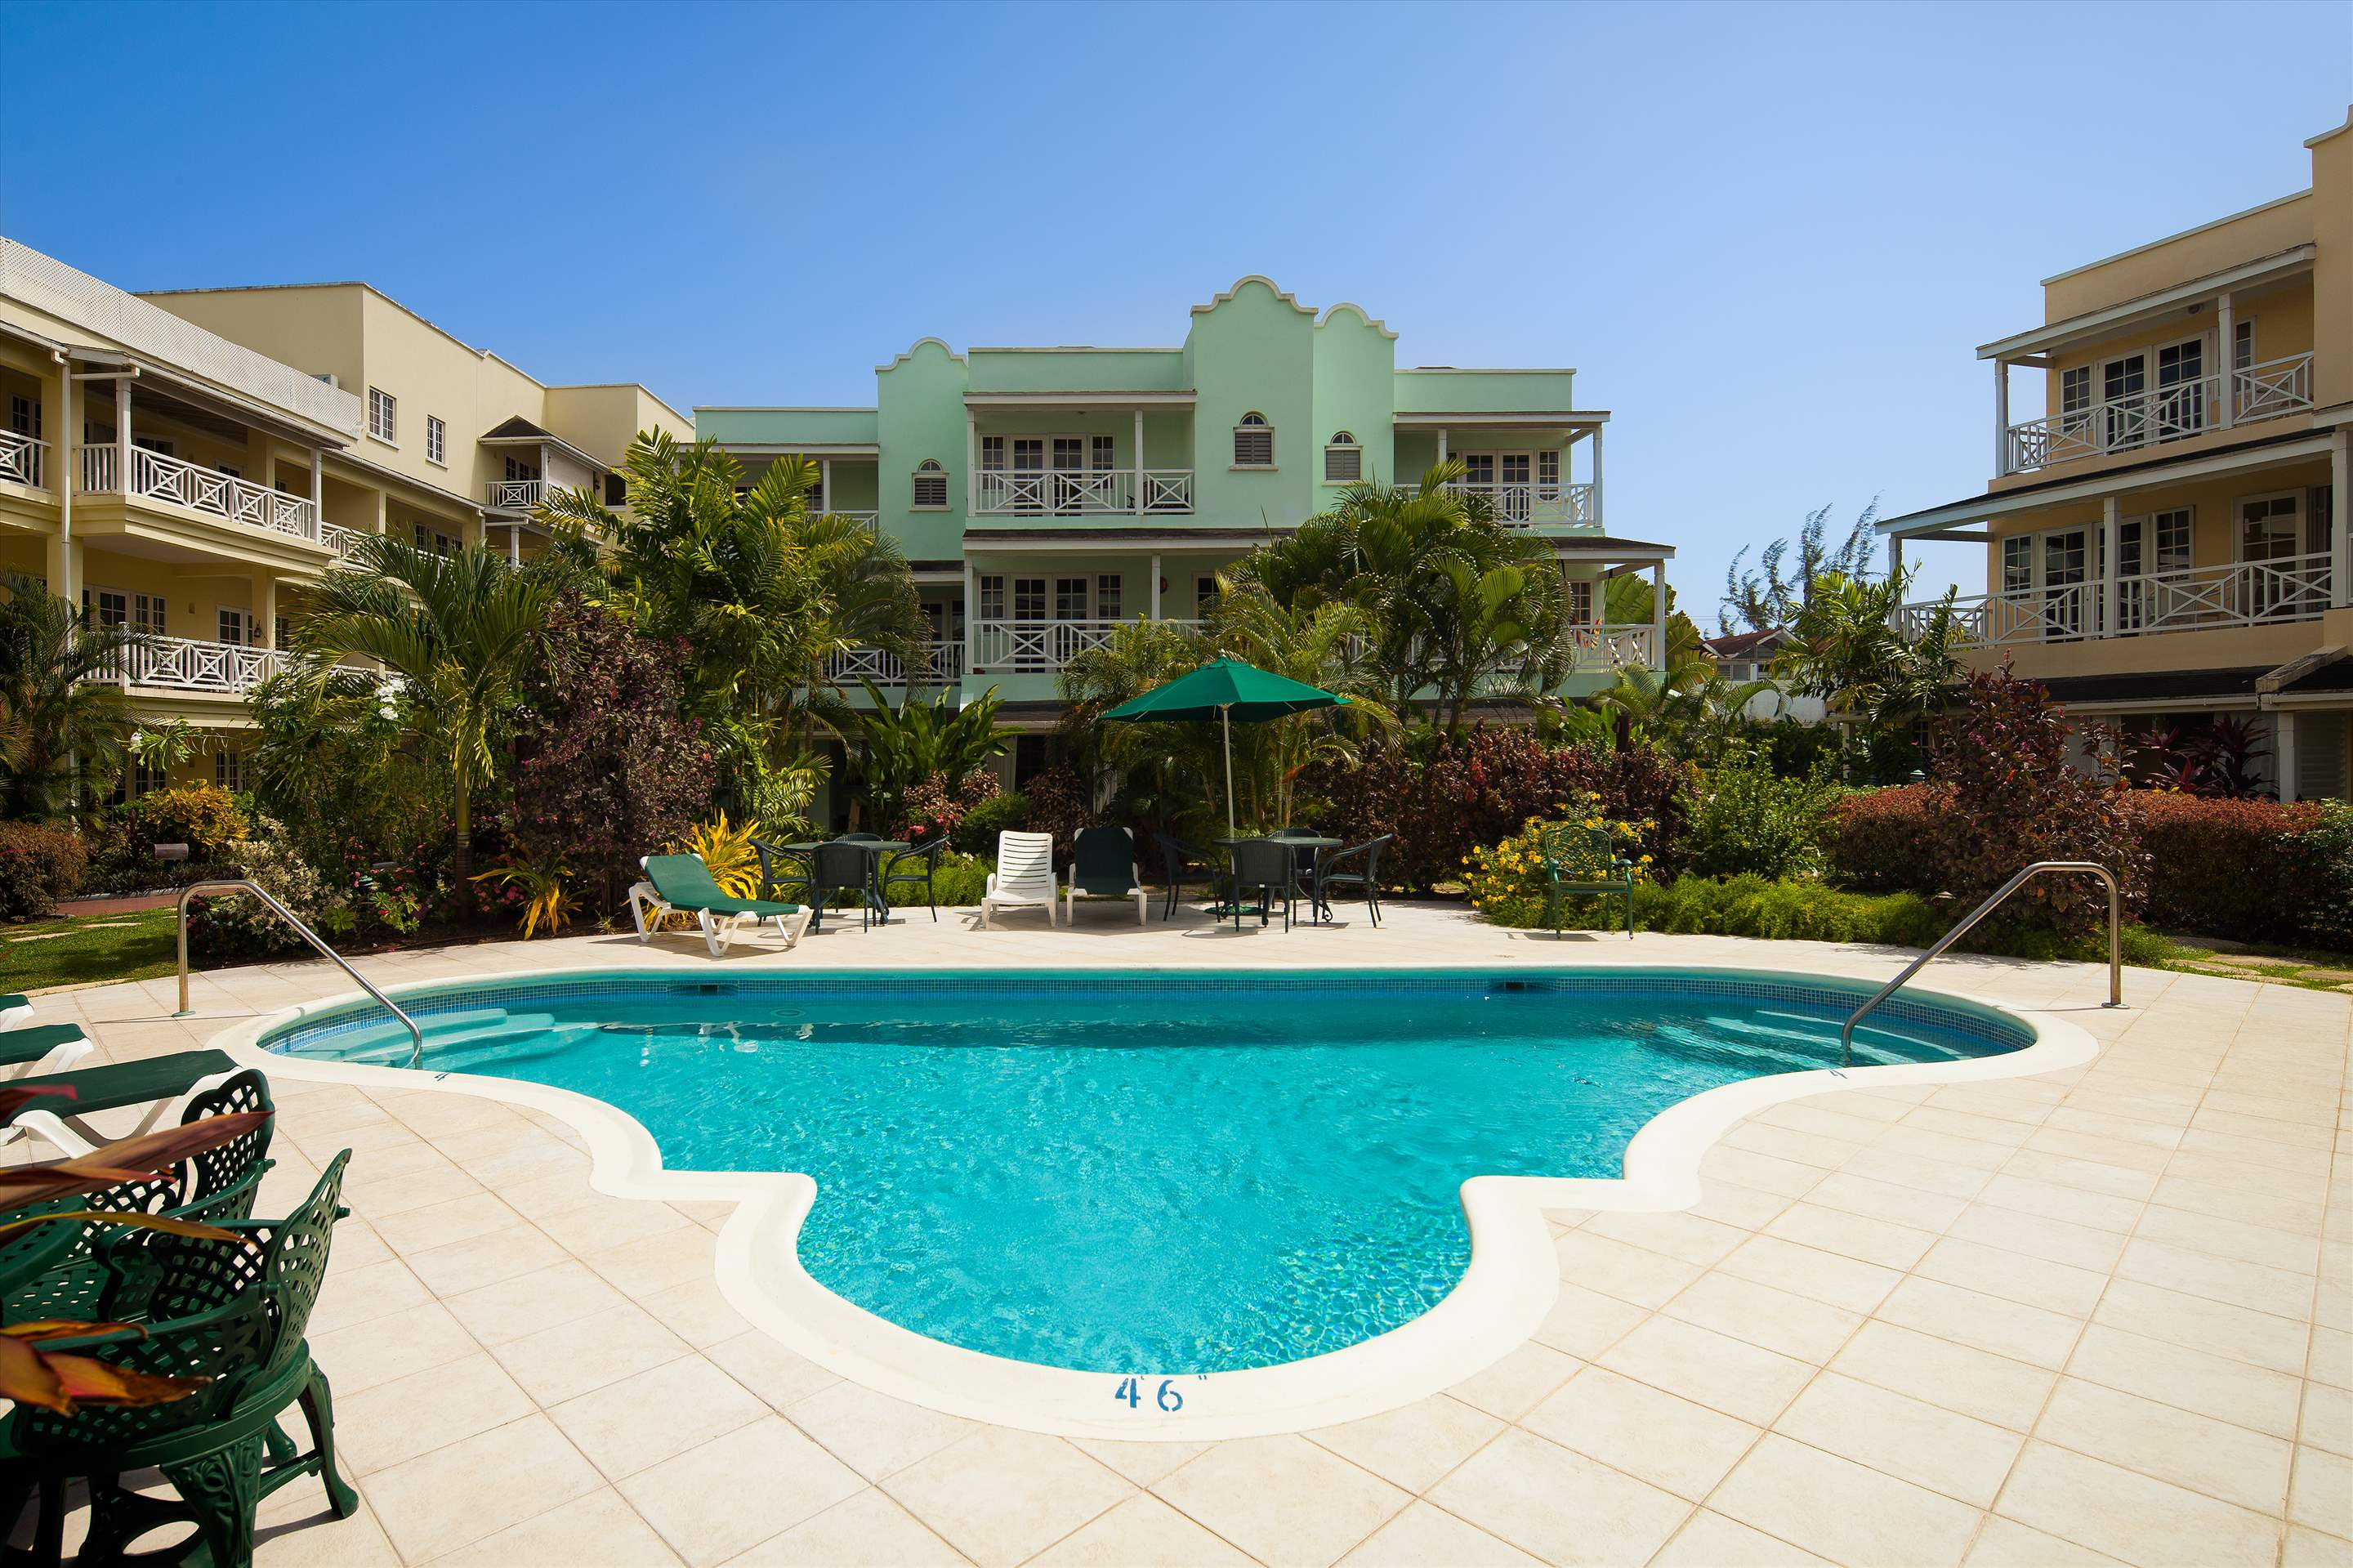 Margate Gardens 4, 2 bedroom, 2 bedroom apartment in St. Lawrence Gap & South Coast, Barbados